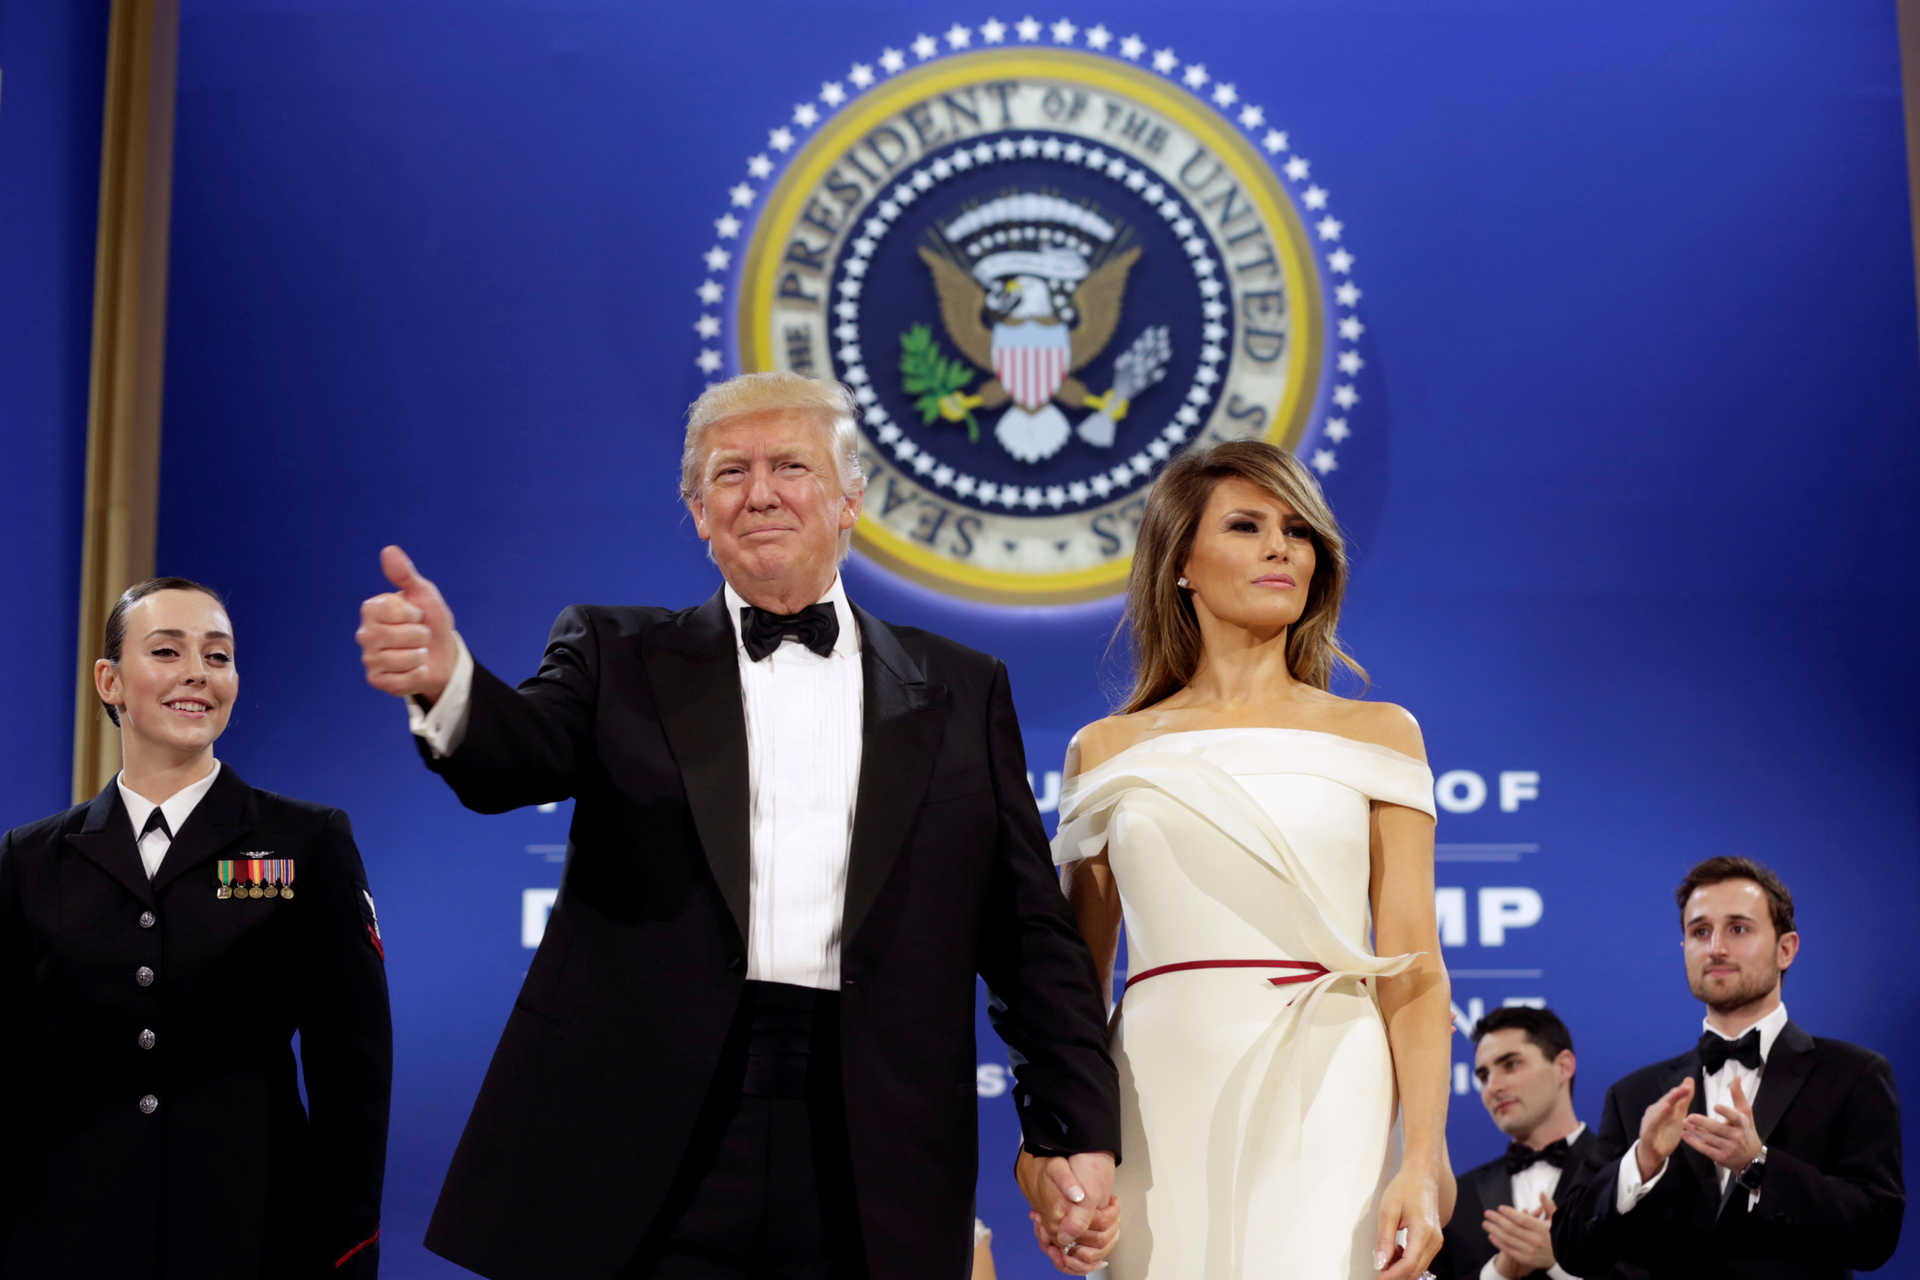 President Donald Trump salutes with his wife Melania